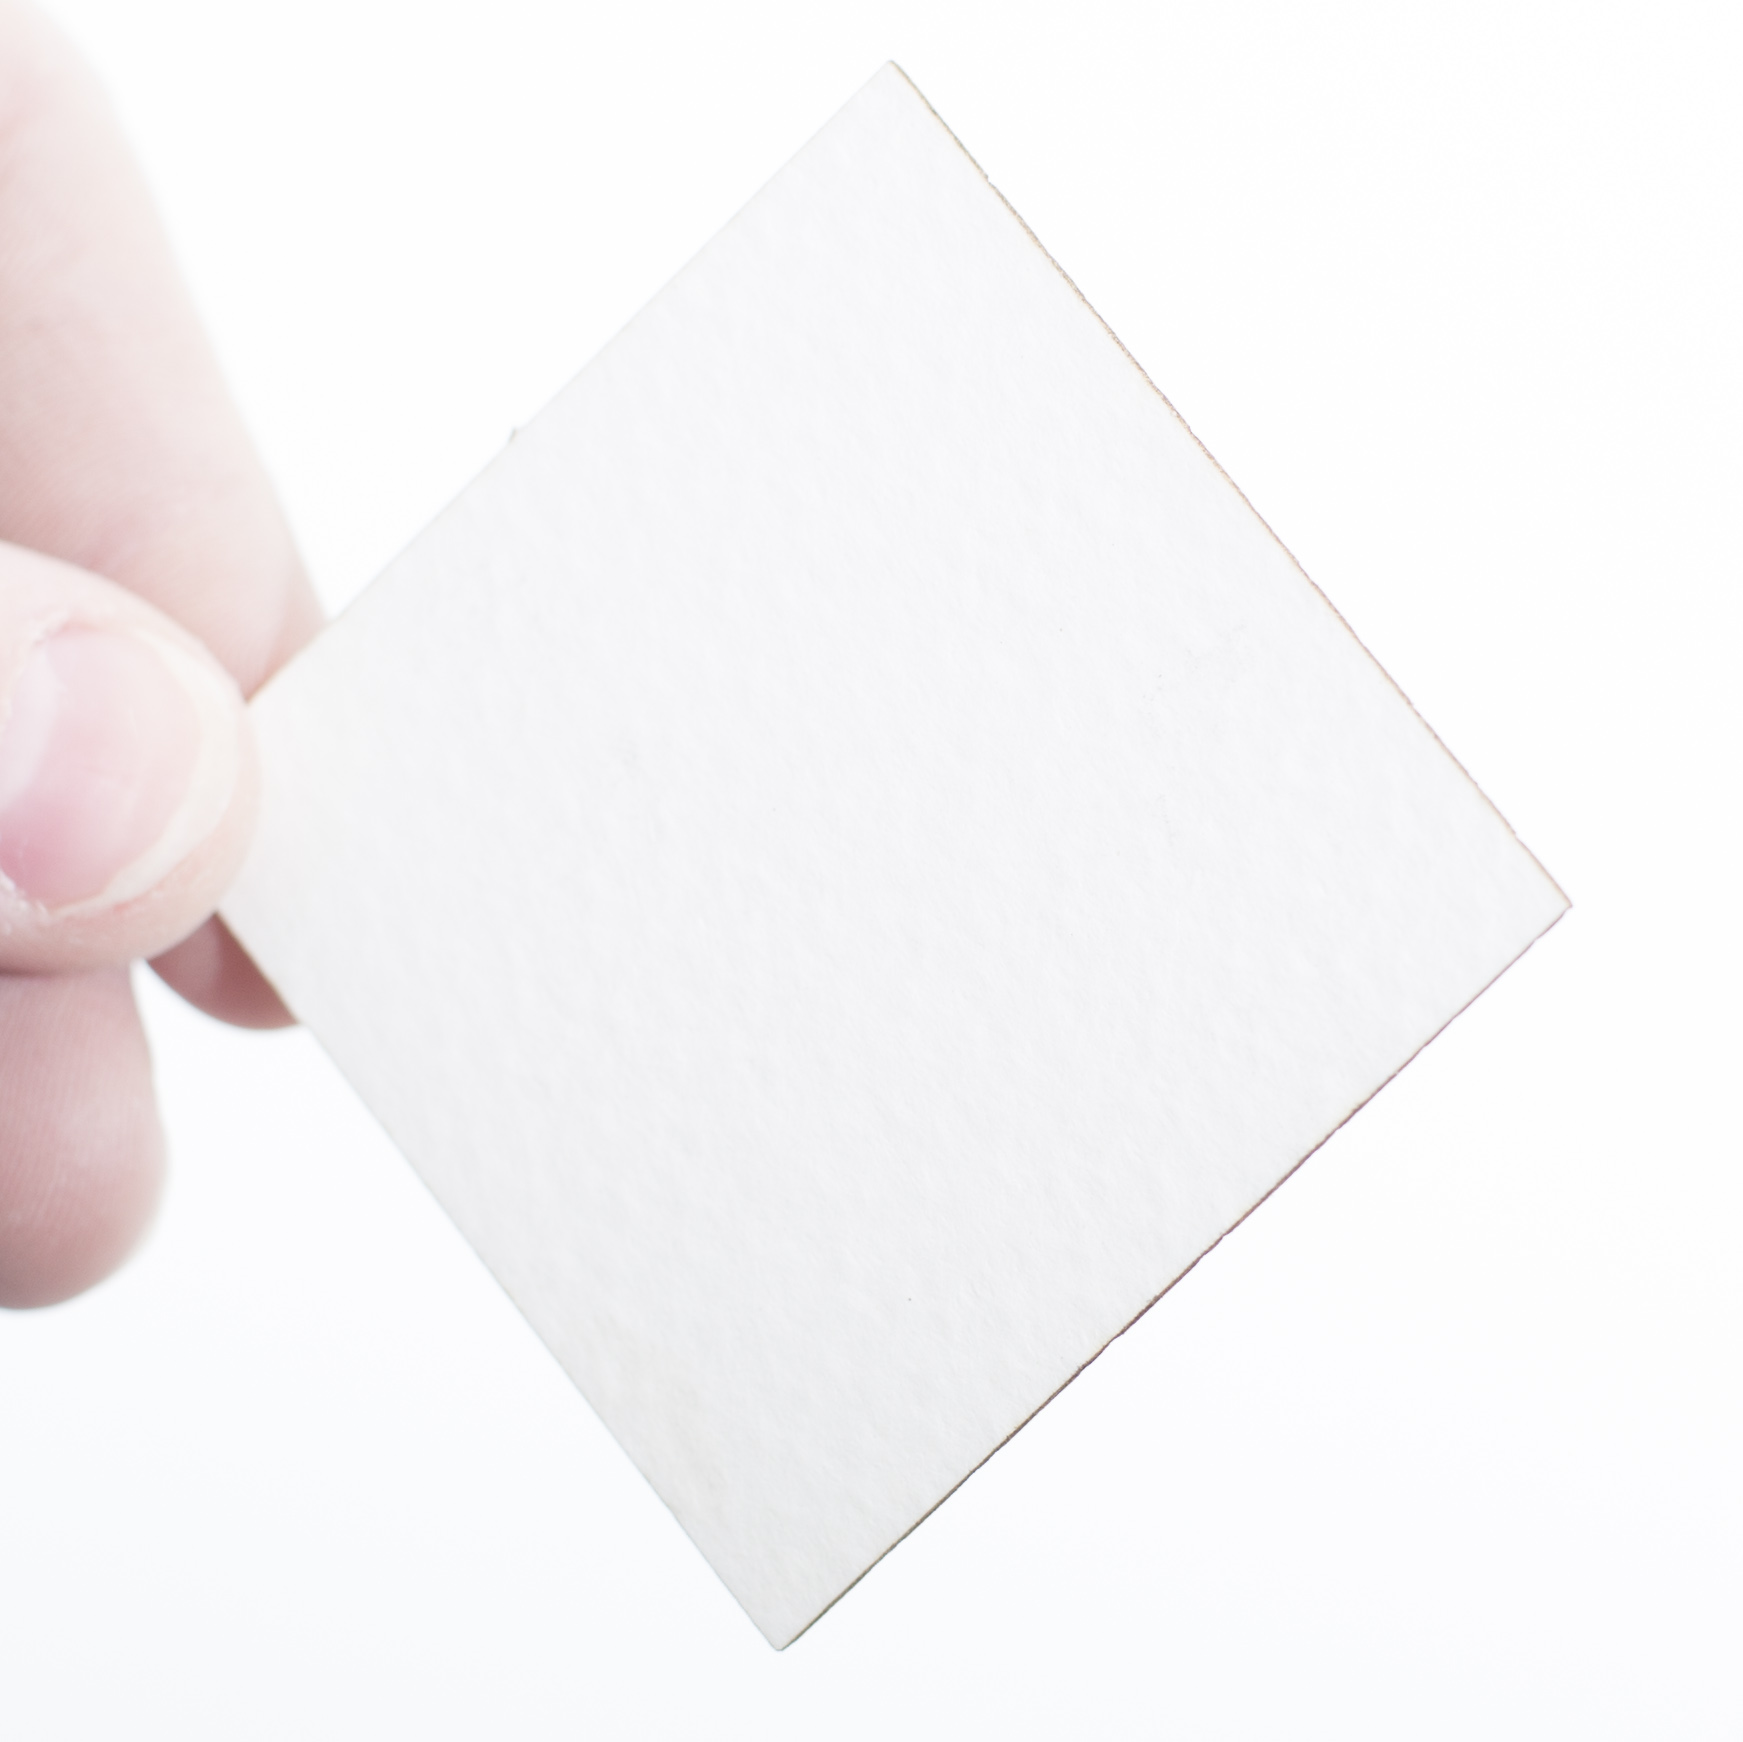 White laser sample for laser cutting or laser etch or engraved pieces